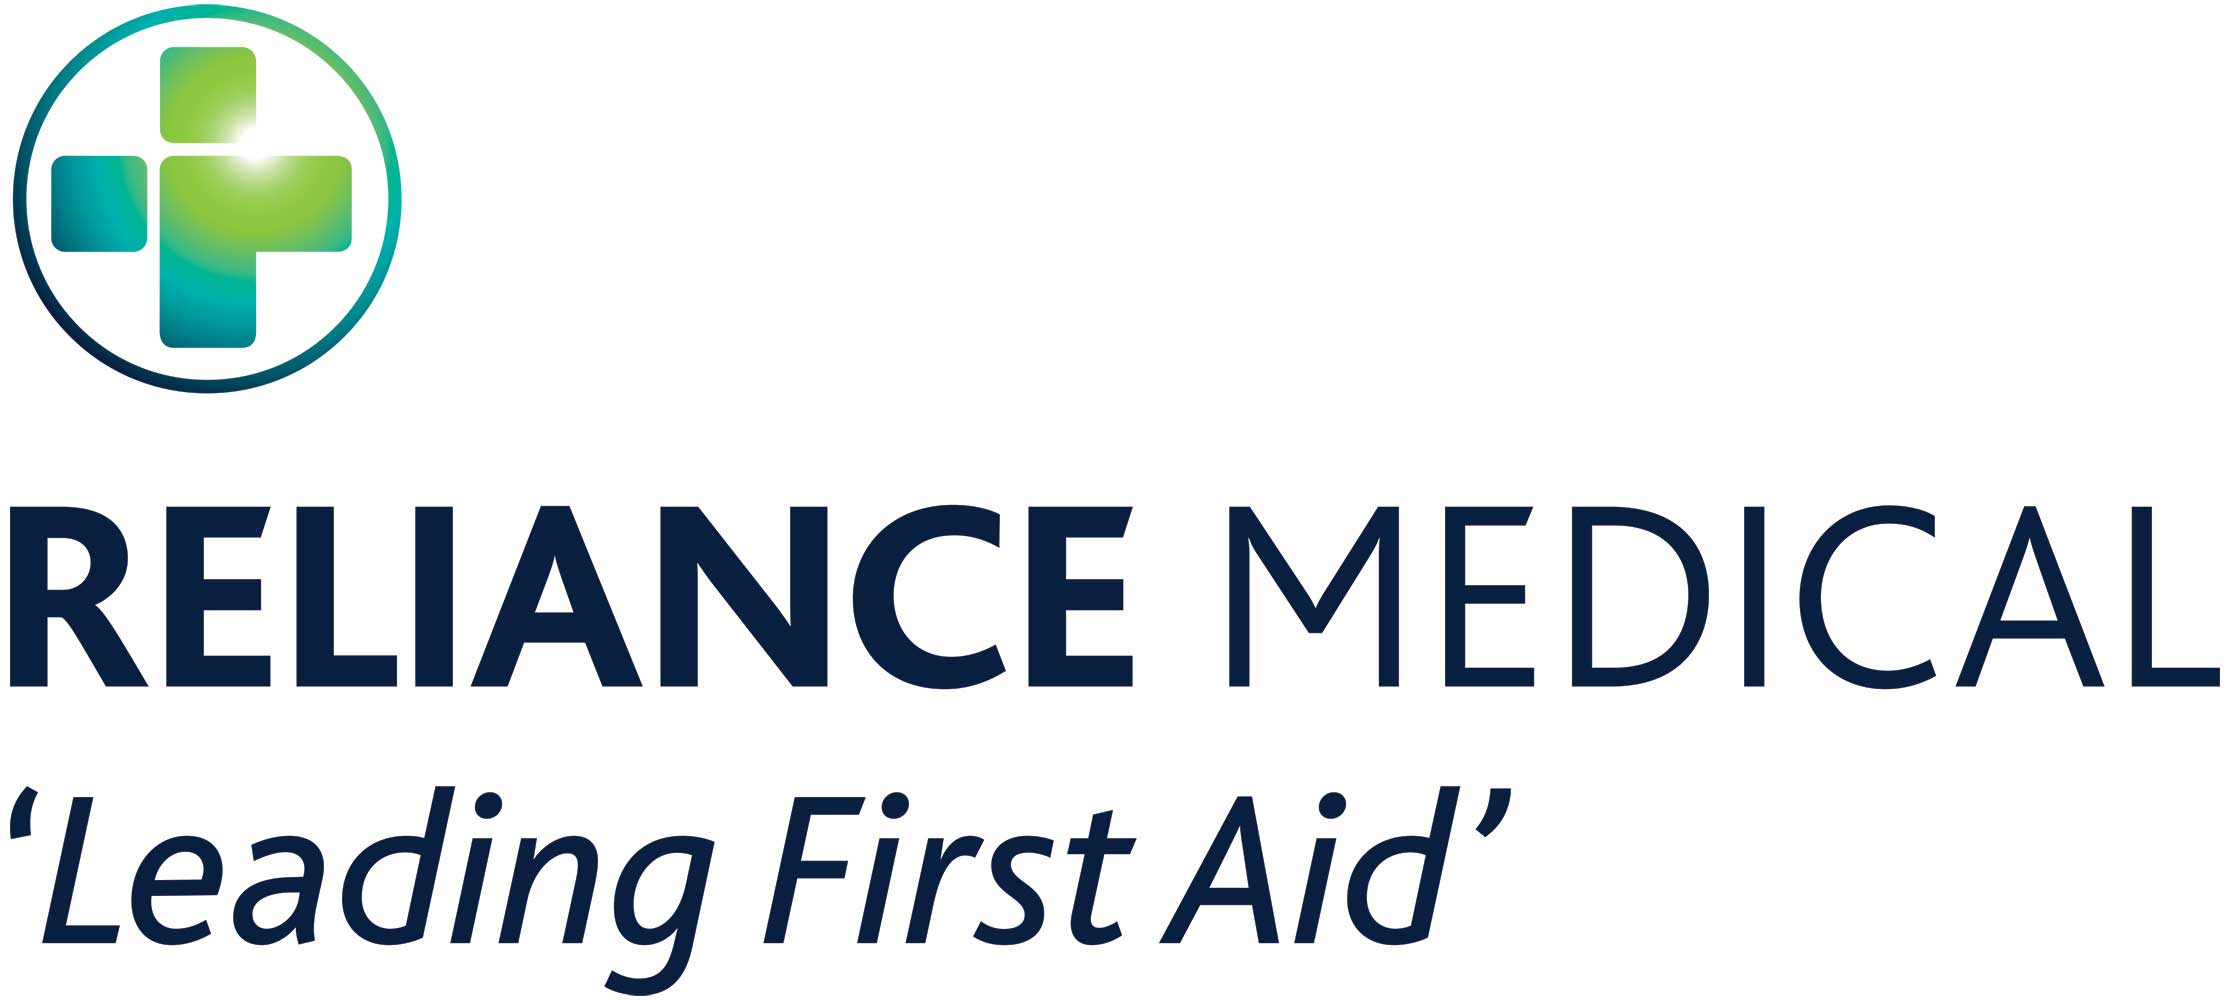 Reliance Medical Logo (new)